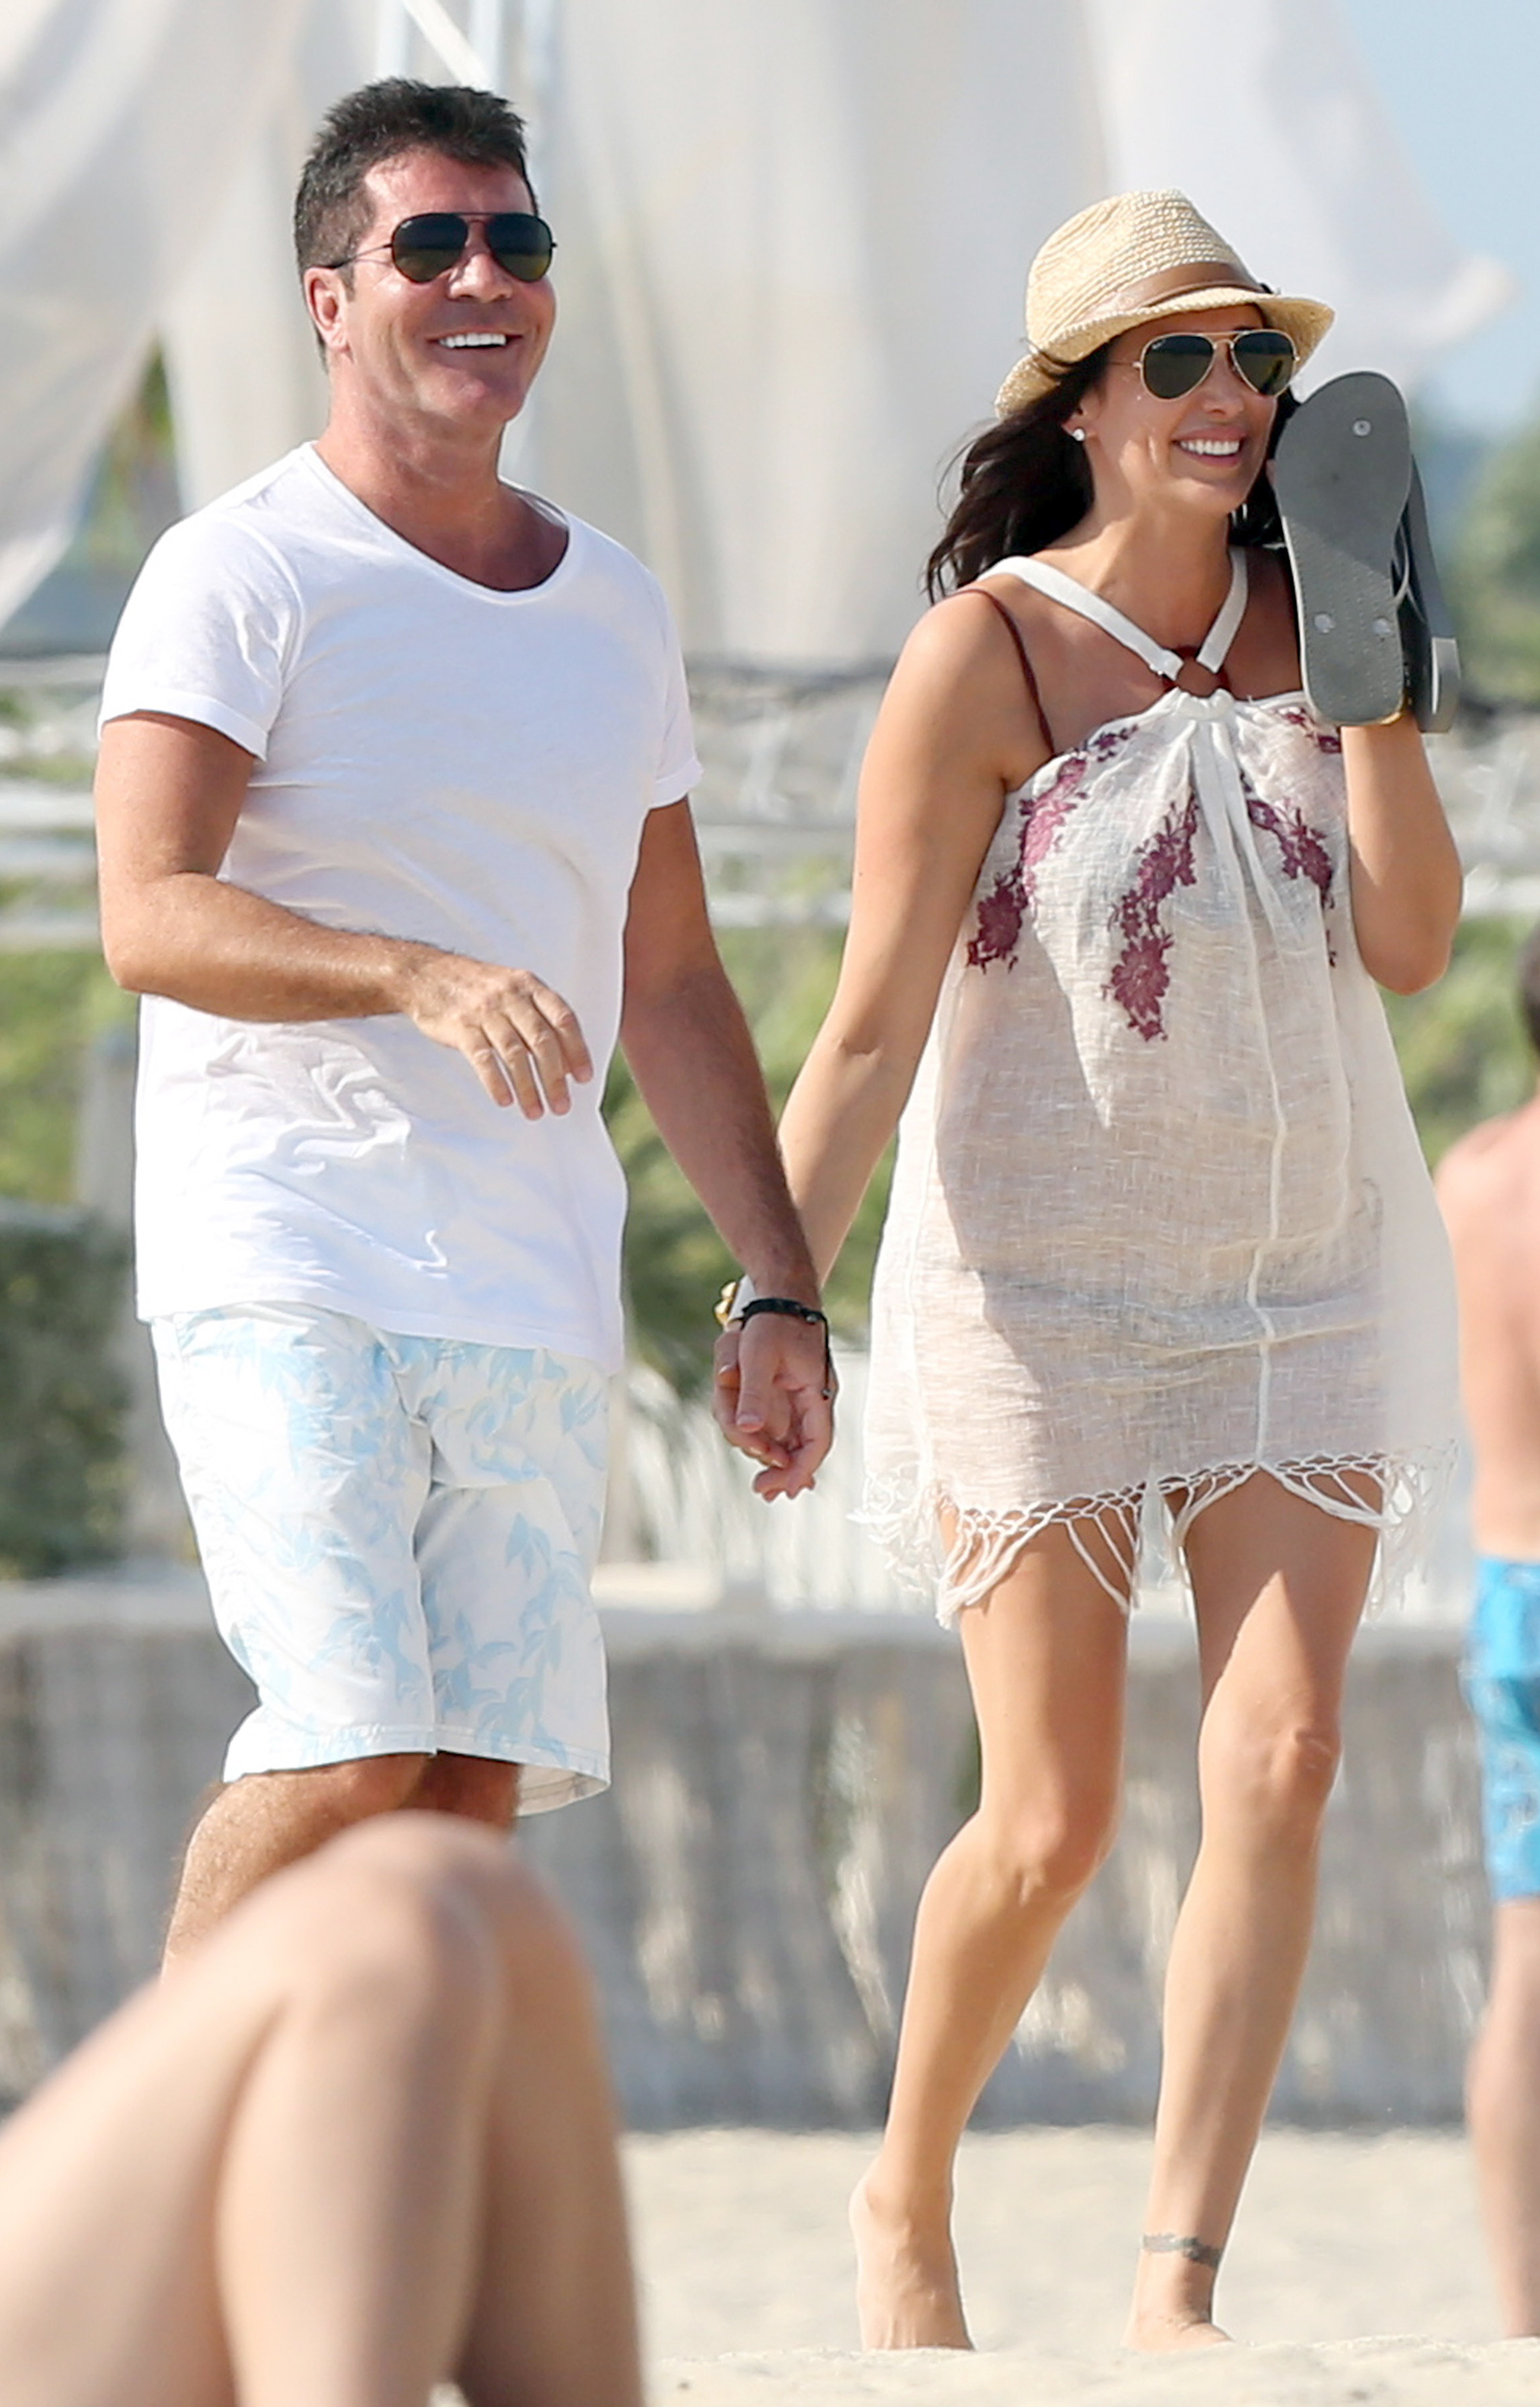 Simon Cowell and Lauren Silverman. (CHP/FAMEFLYNET)